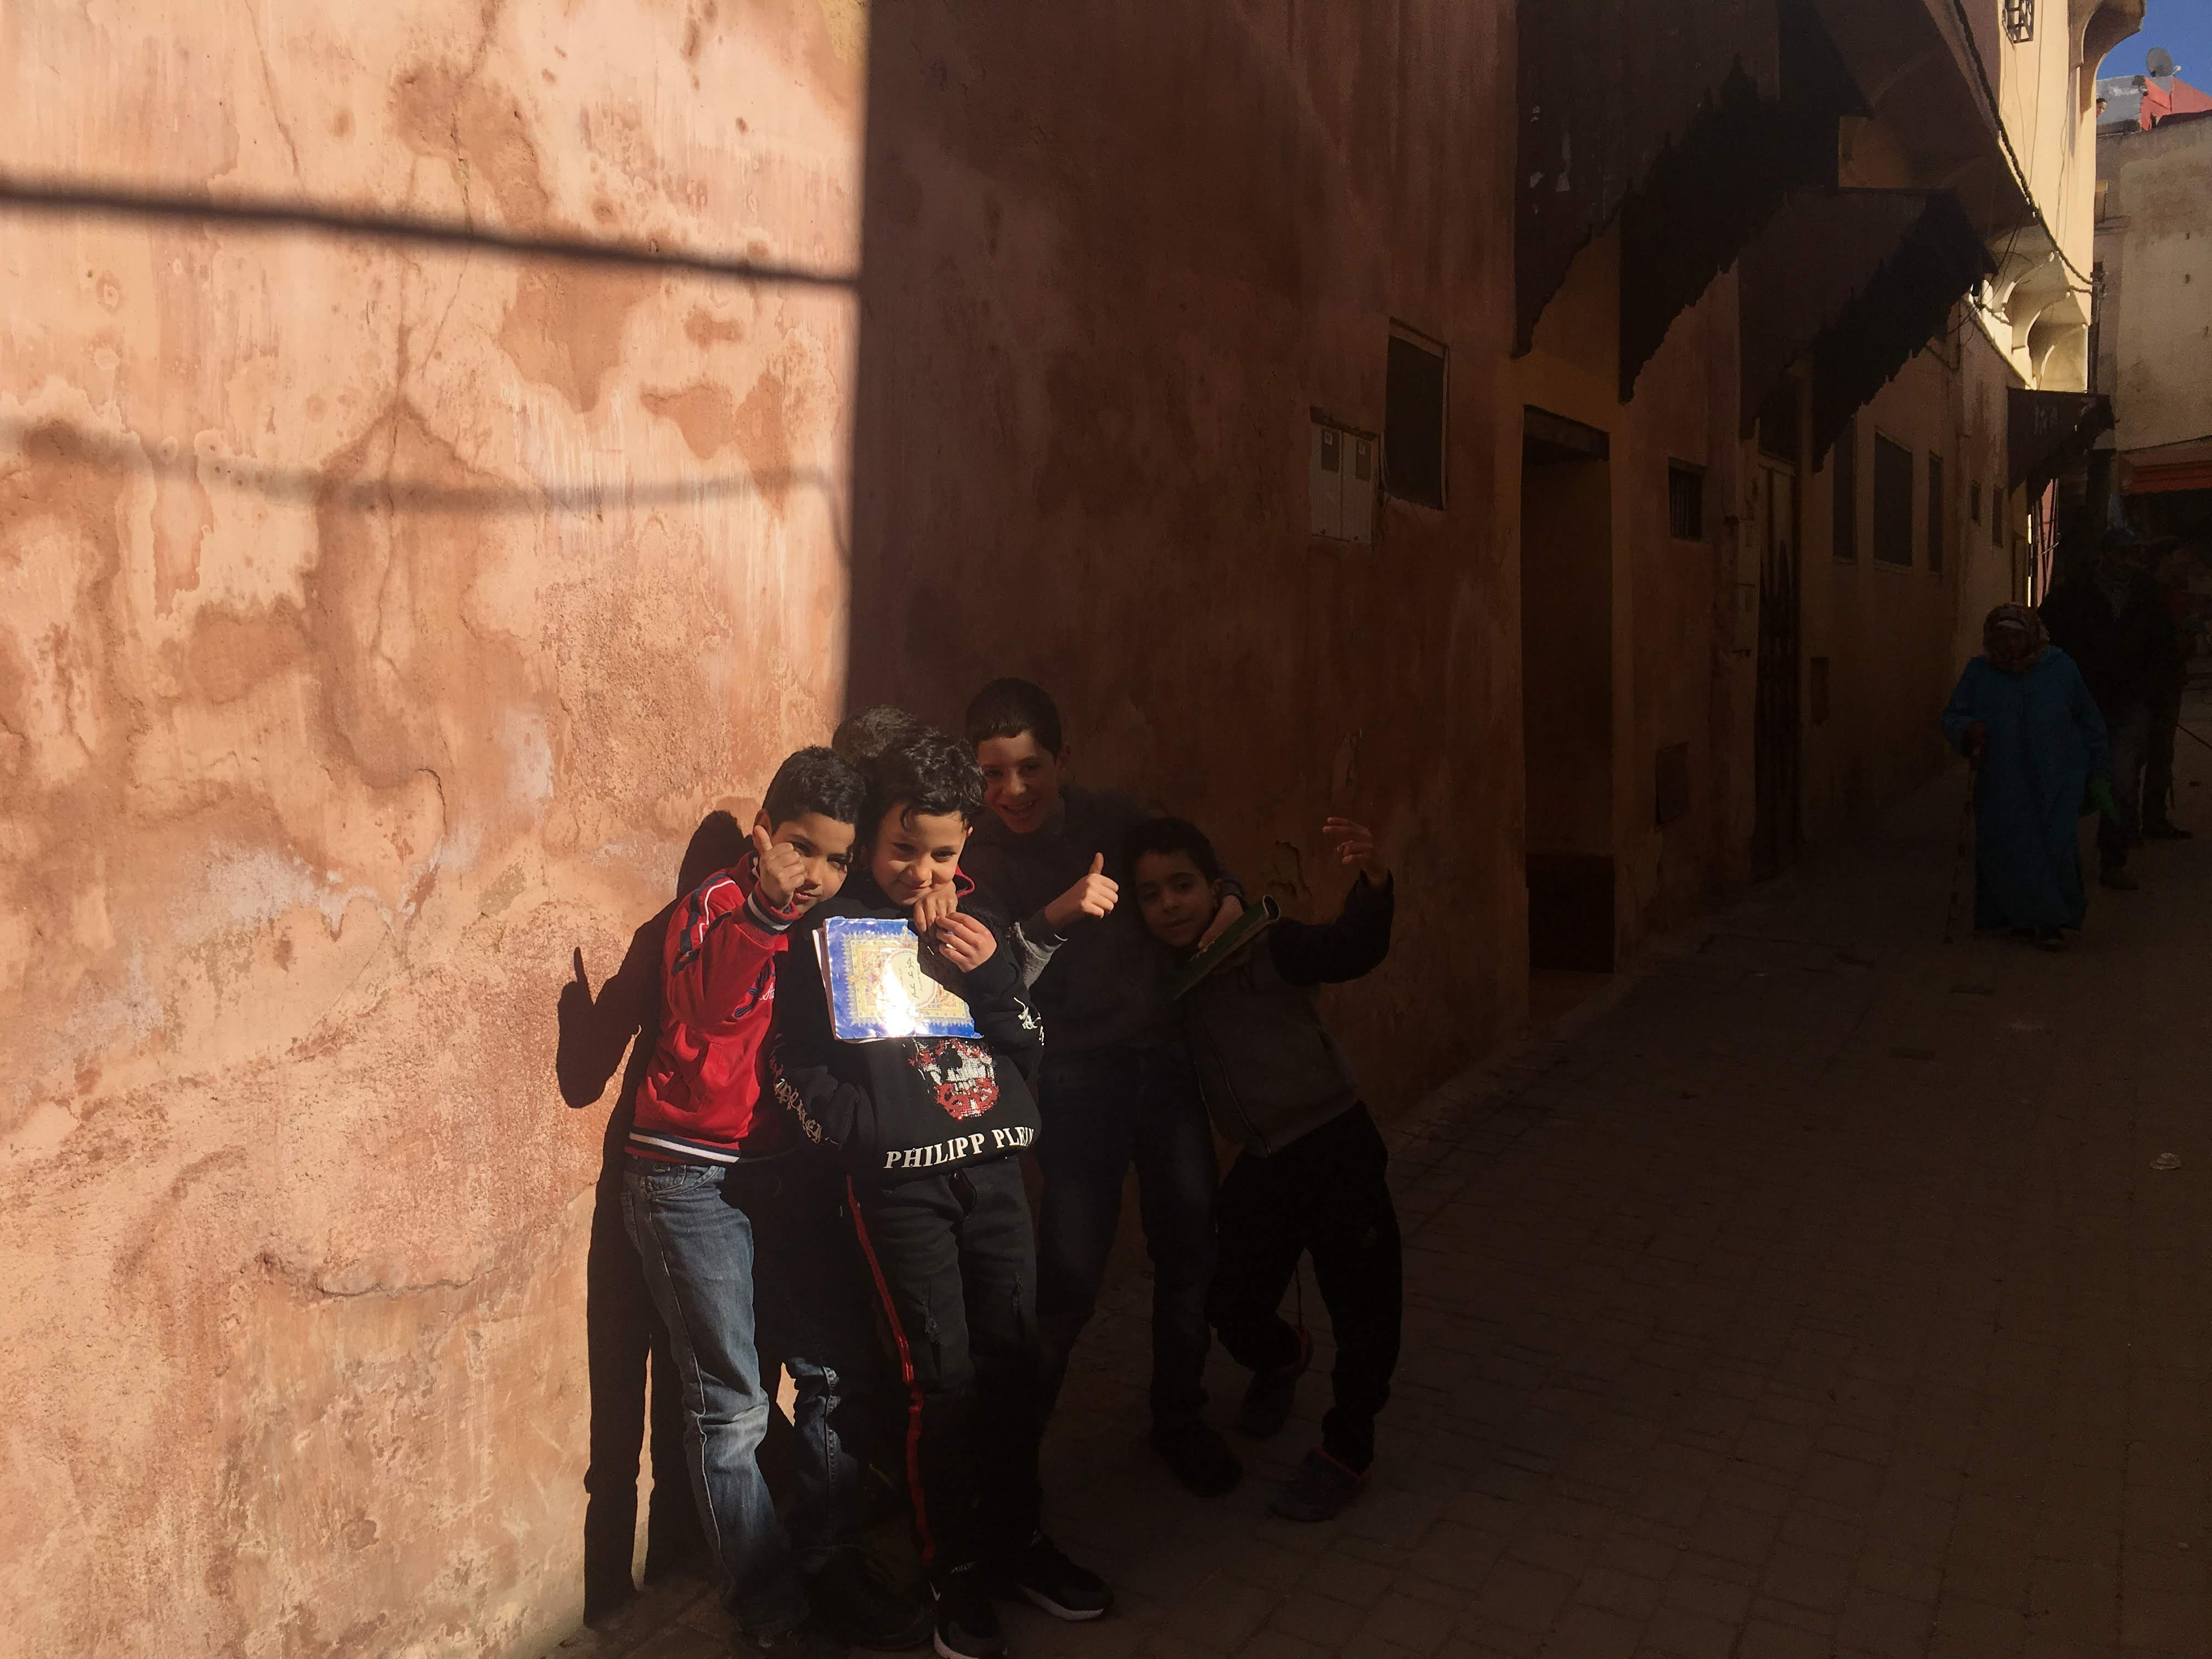 a group of young boys pose for a photo